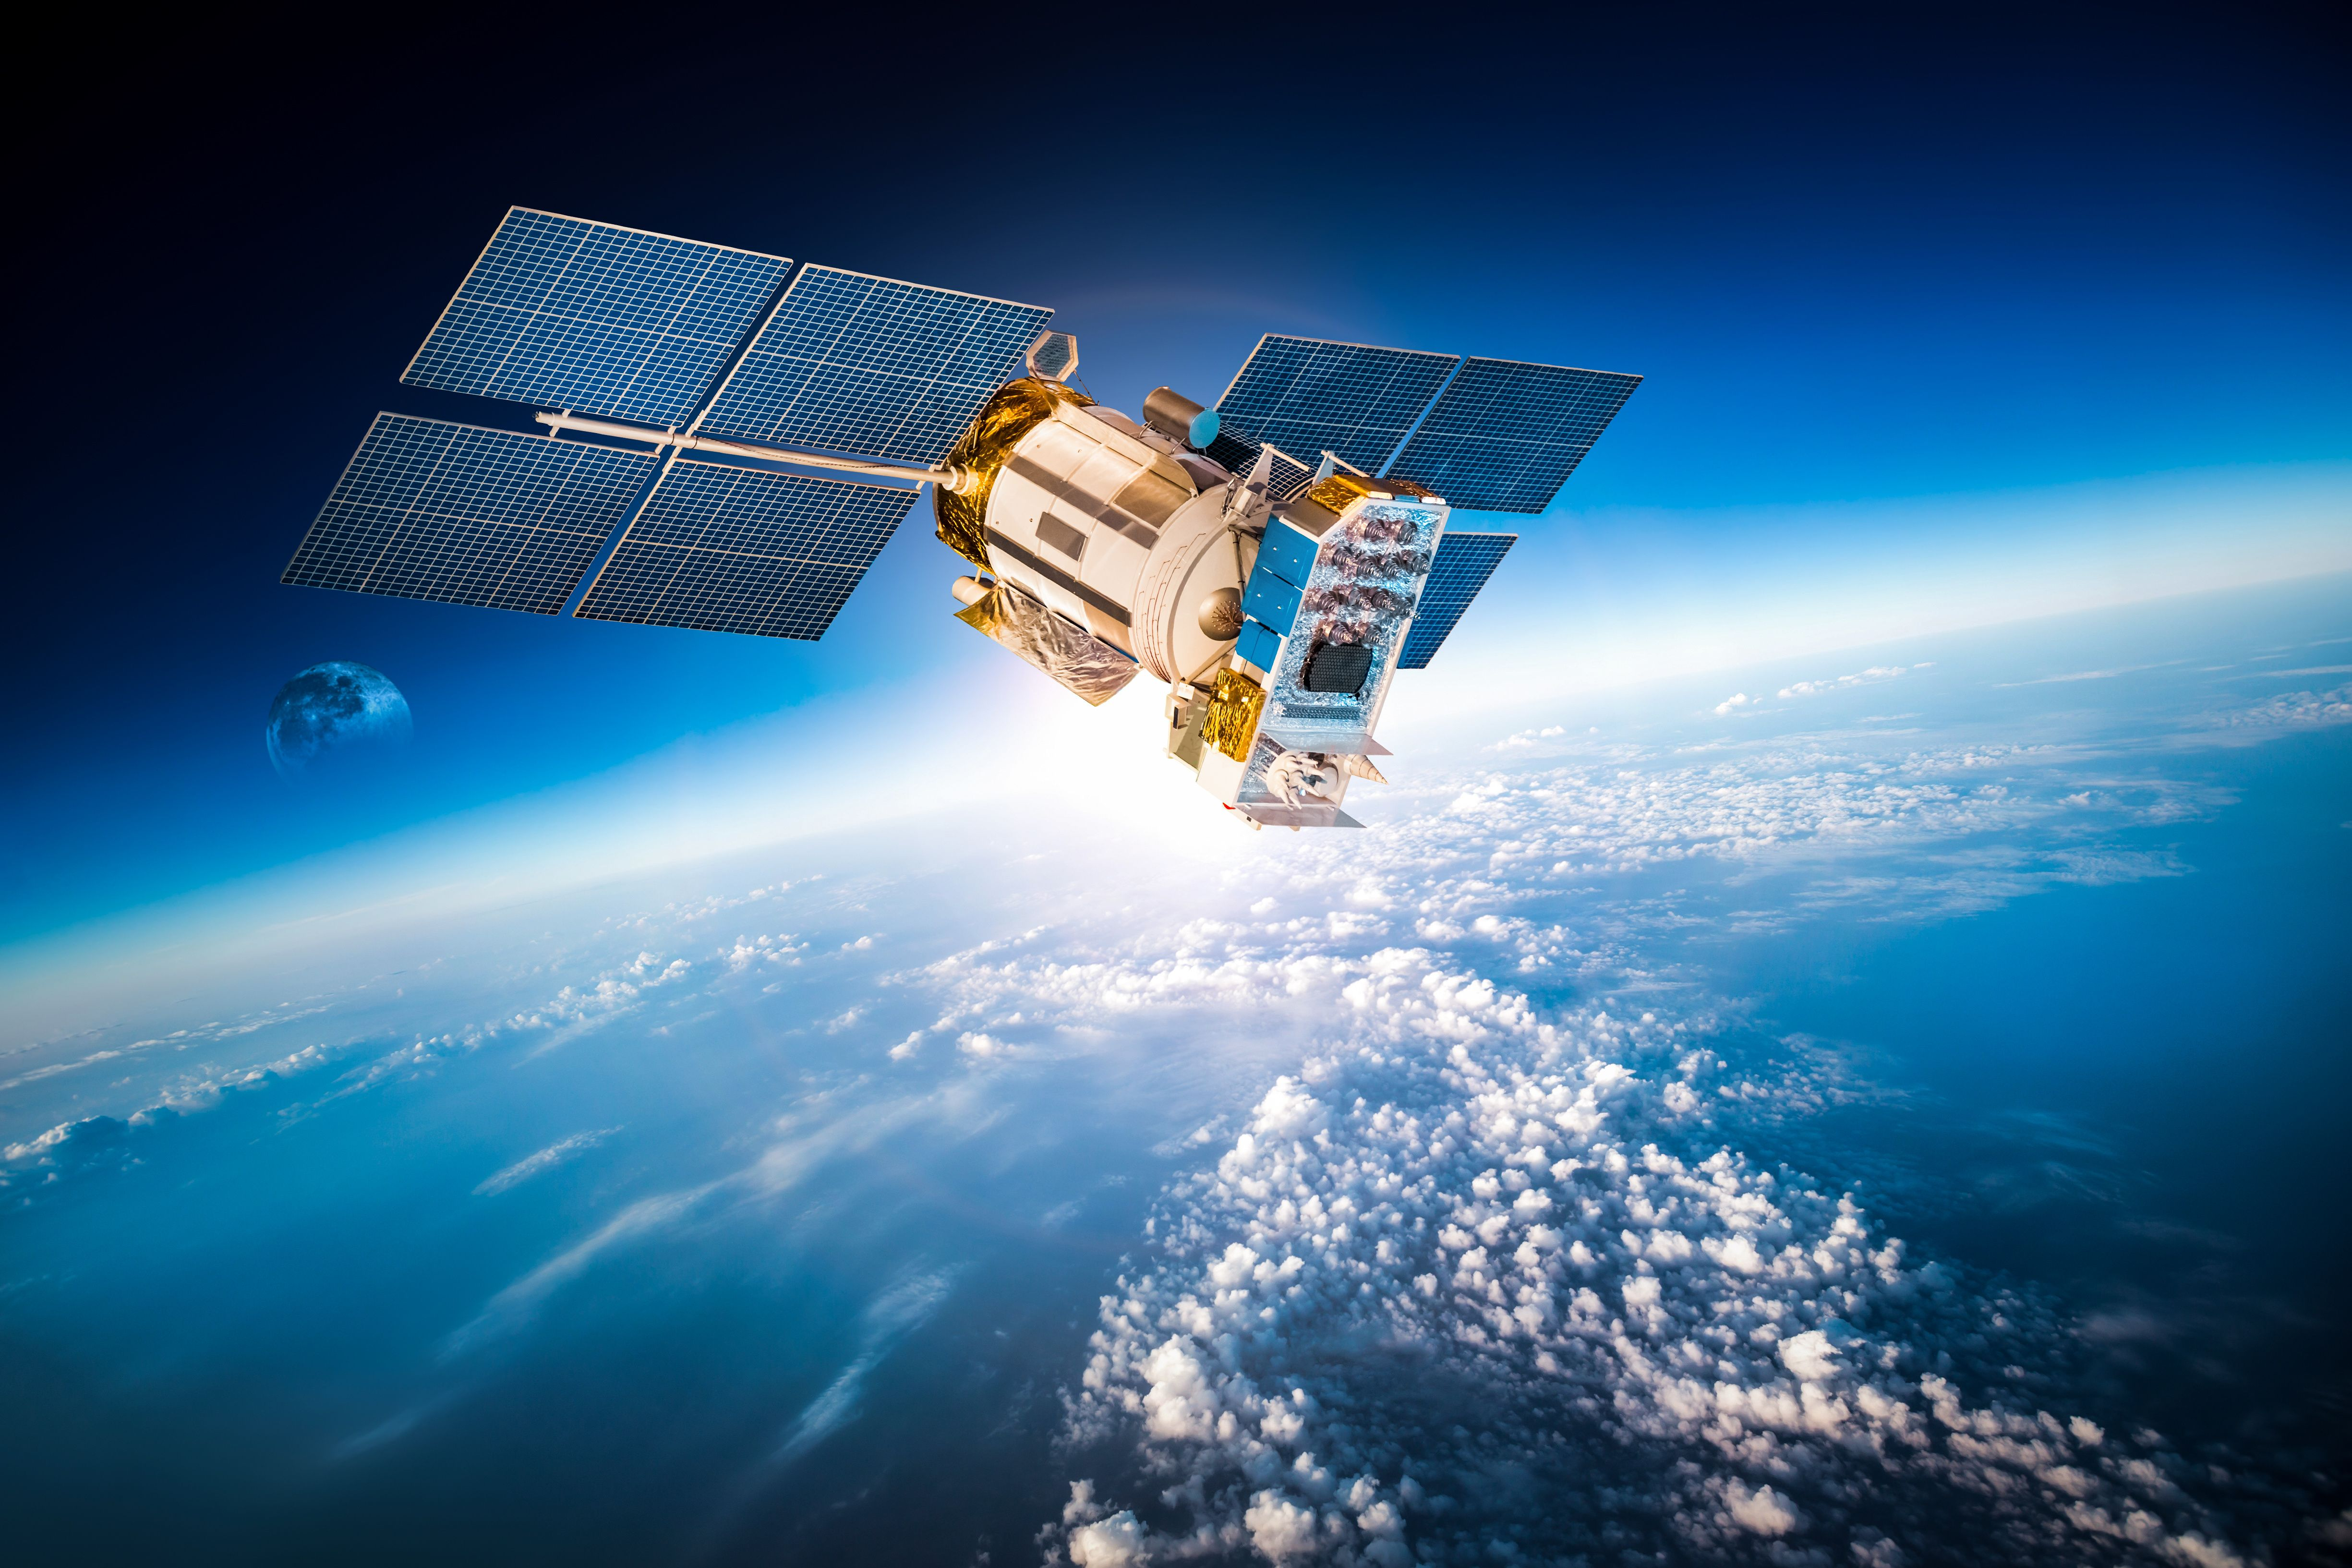 GPS Owes a Debt of Gratitude to Einstein's Theory of Relativity